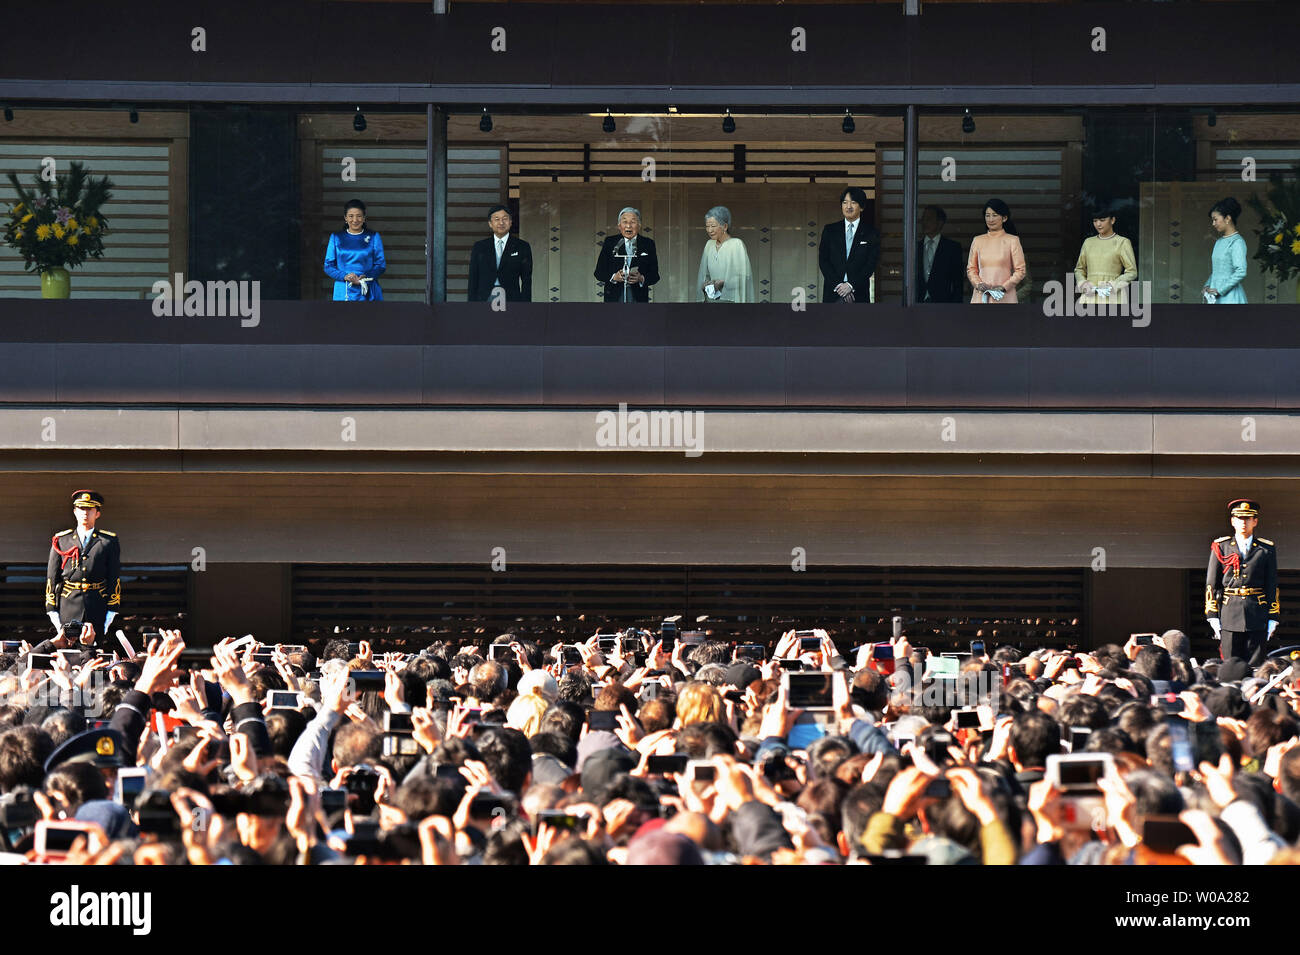 Japan's Emperor Akihito(L3) speaks to well-wishers during a new year greeting at the East Plaza, Imperial Palace in Tokyo, Japan, on January 2, 2017.     Photo by Keizo Mori/UPI - Stock Image